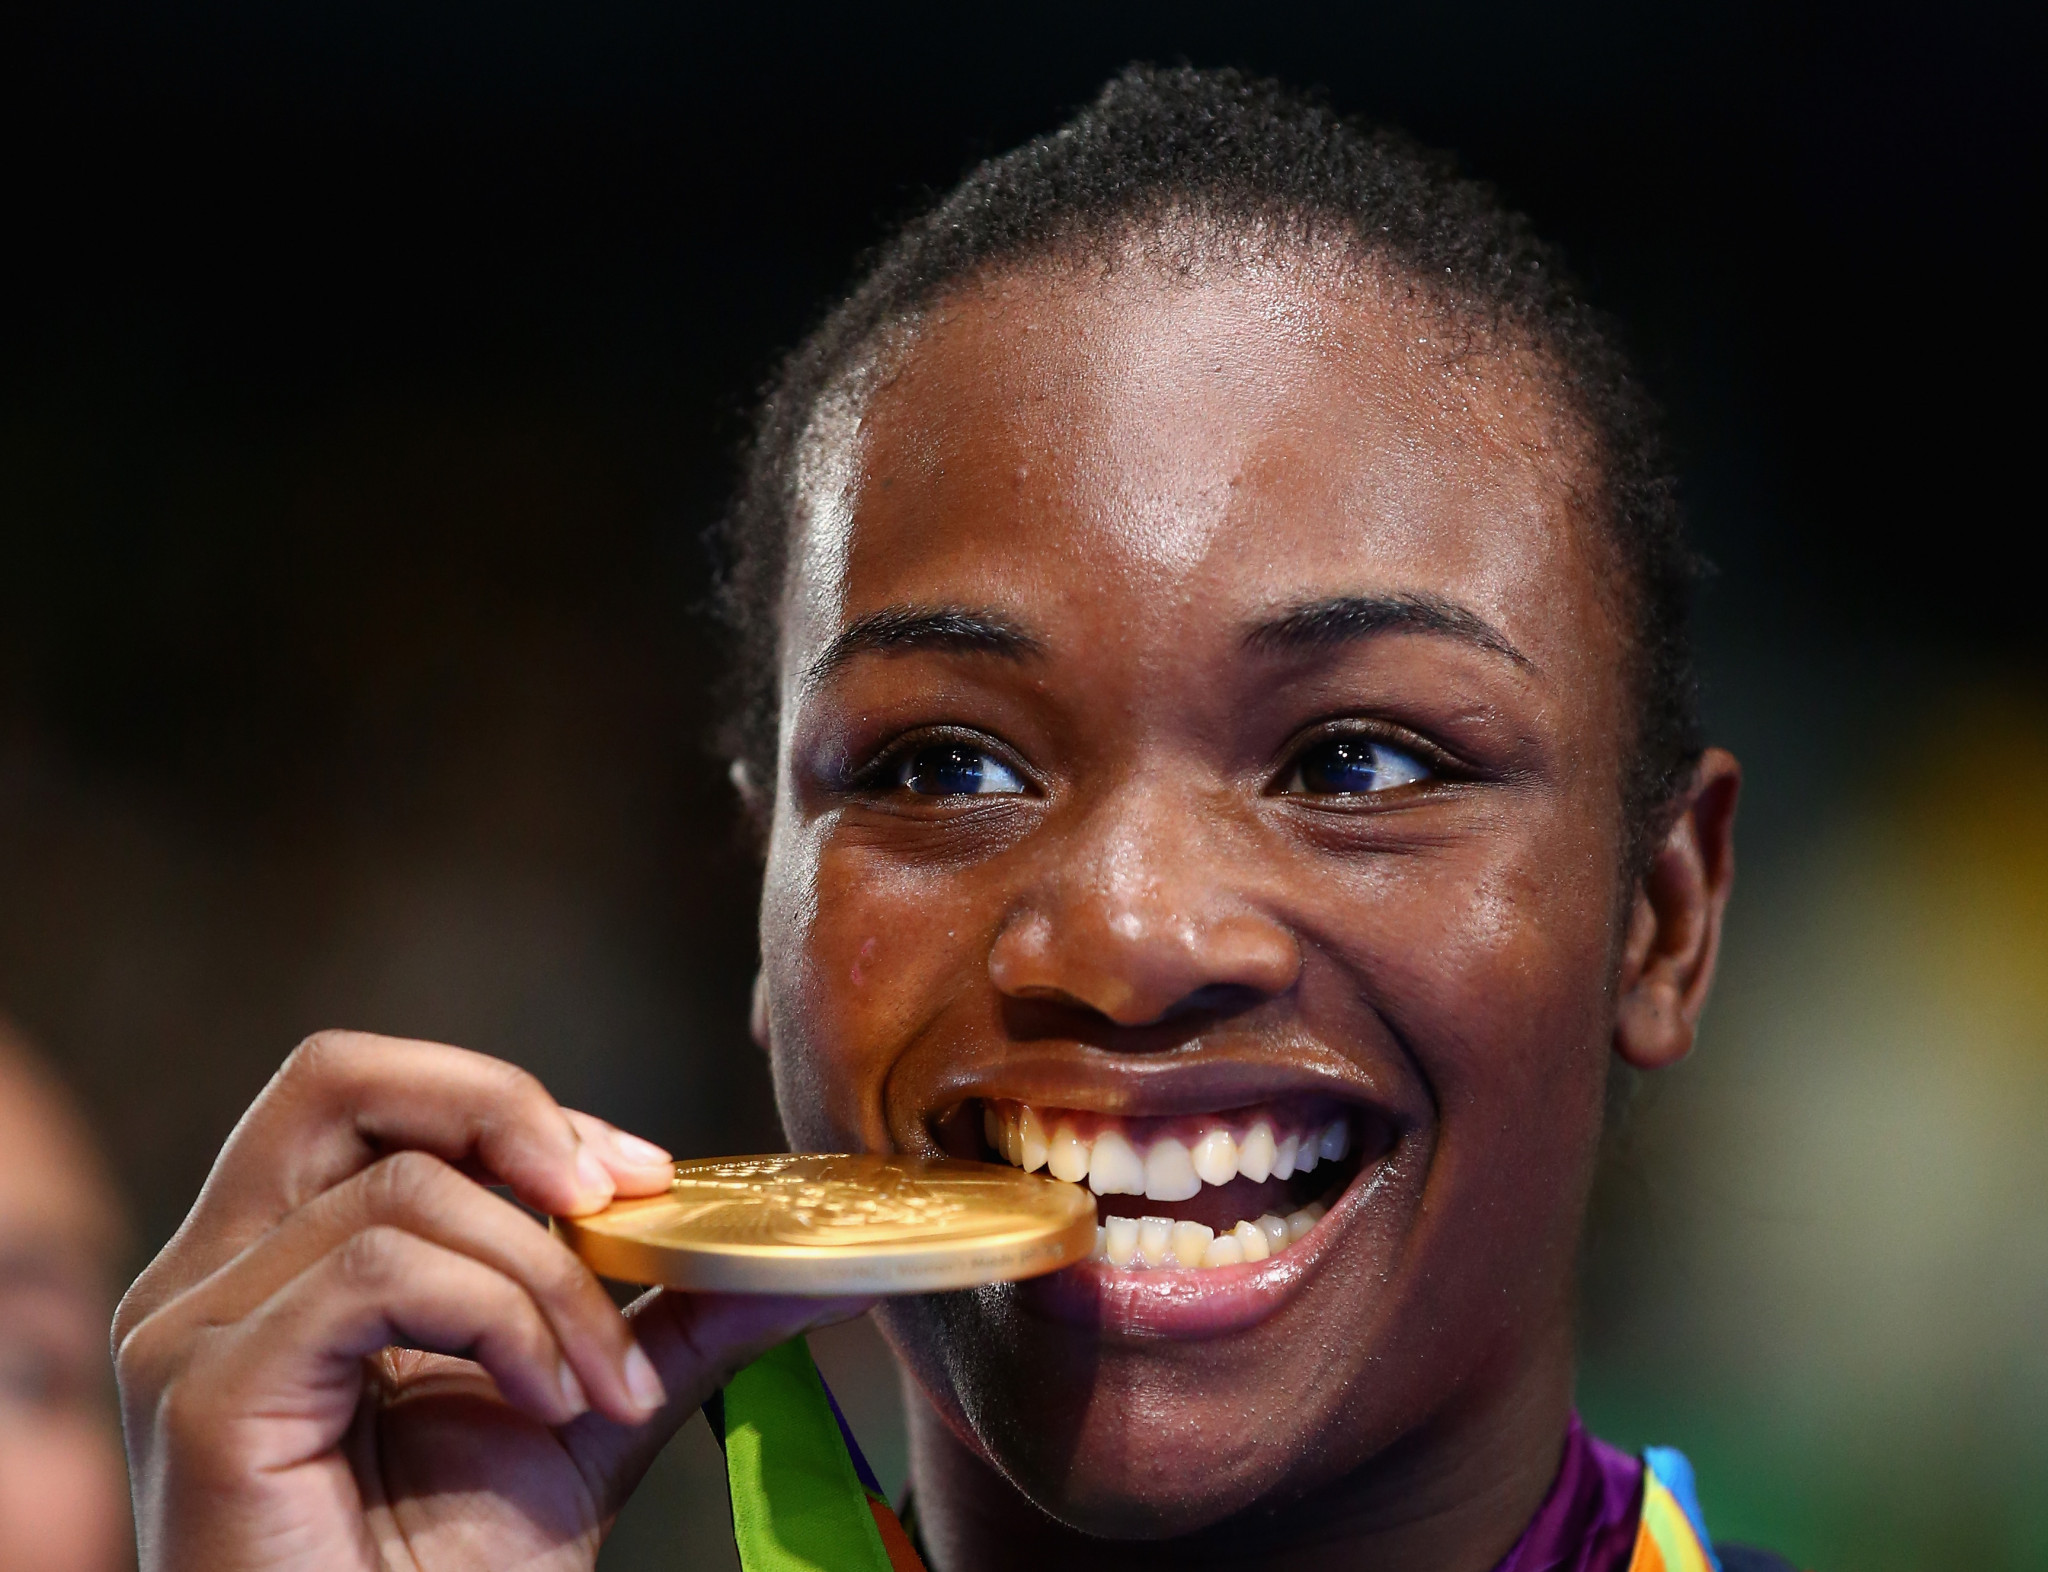 Two-time Olympic boxing champion Claressa Shields will act as a mentor in the training camp ©Getty Images